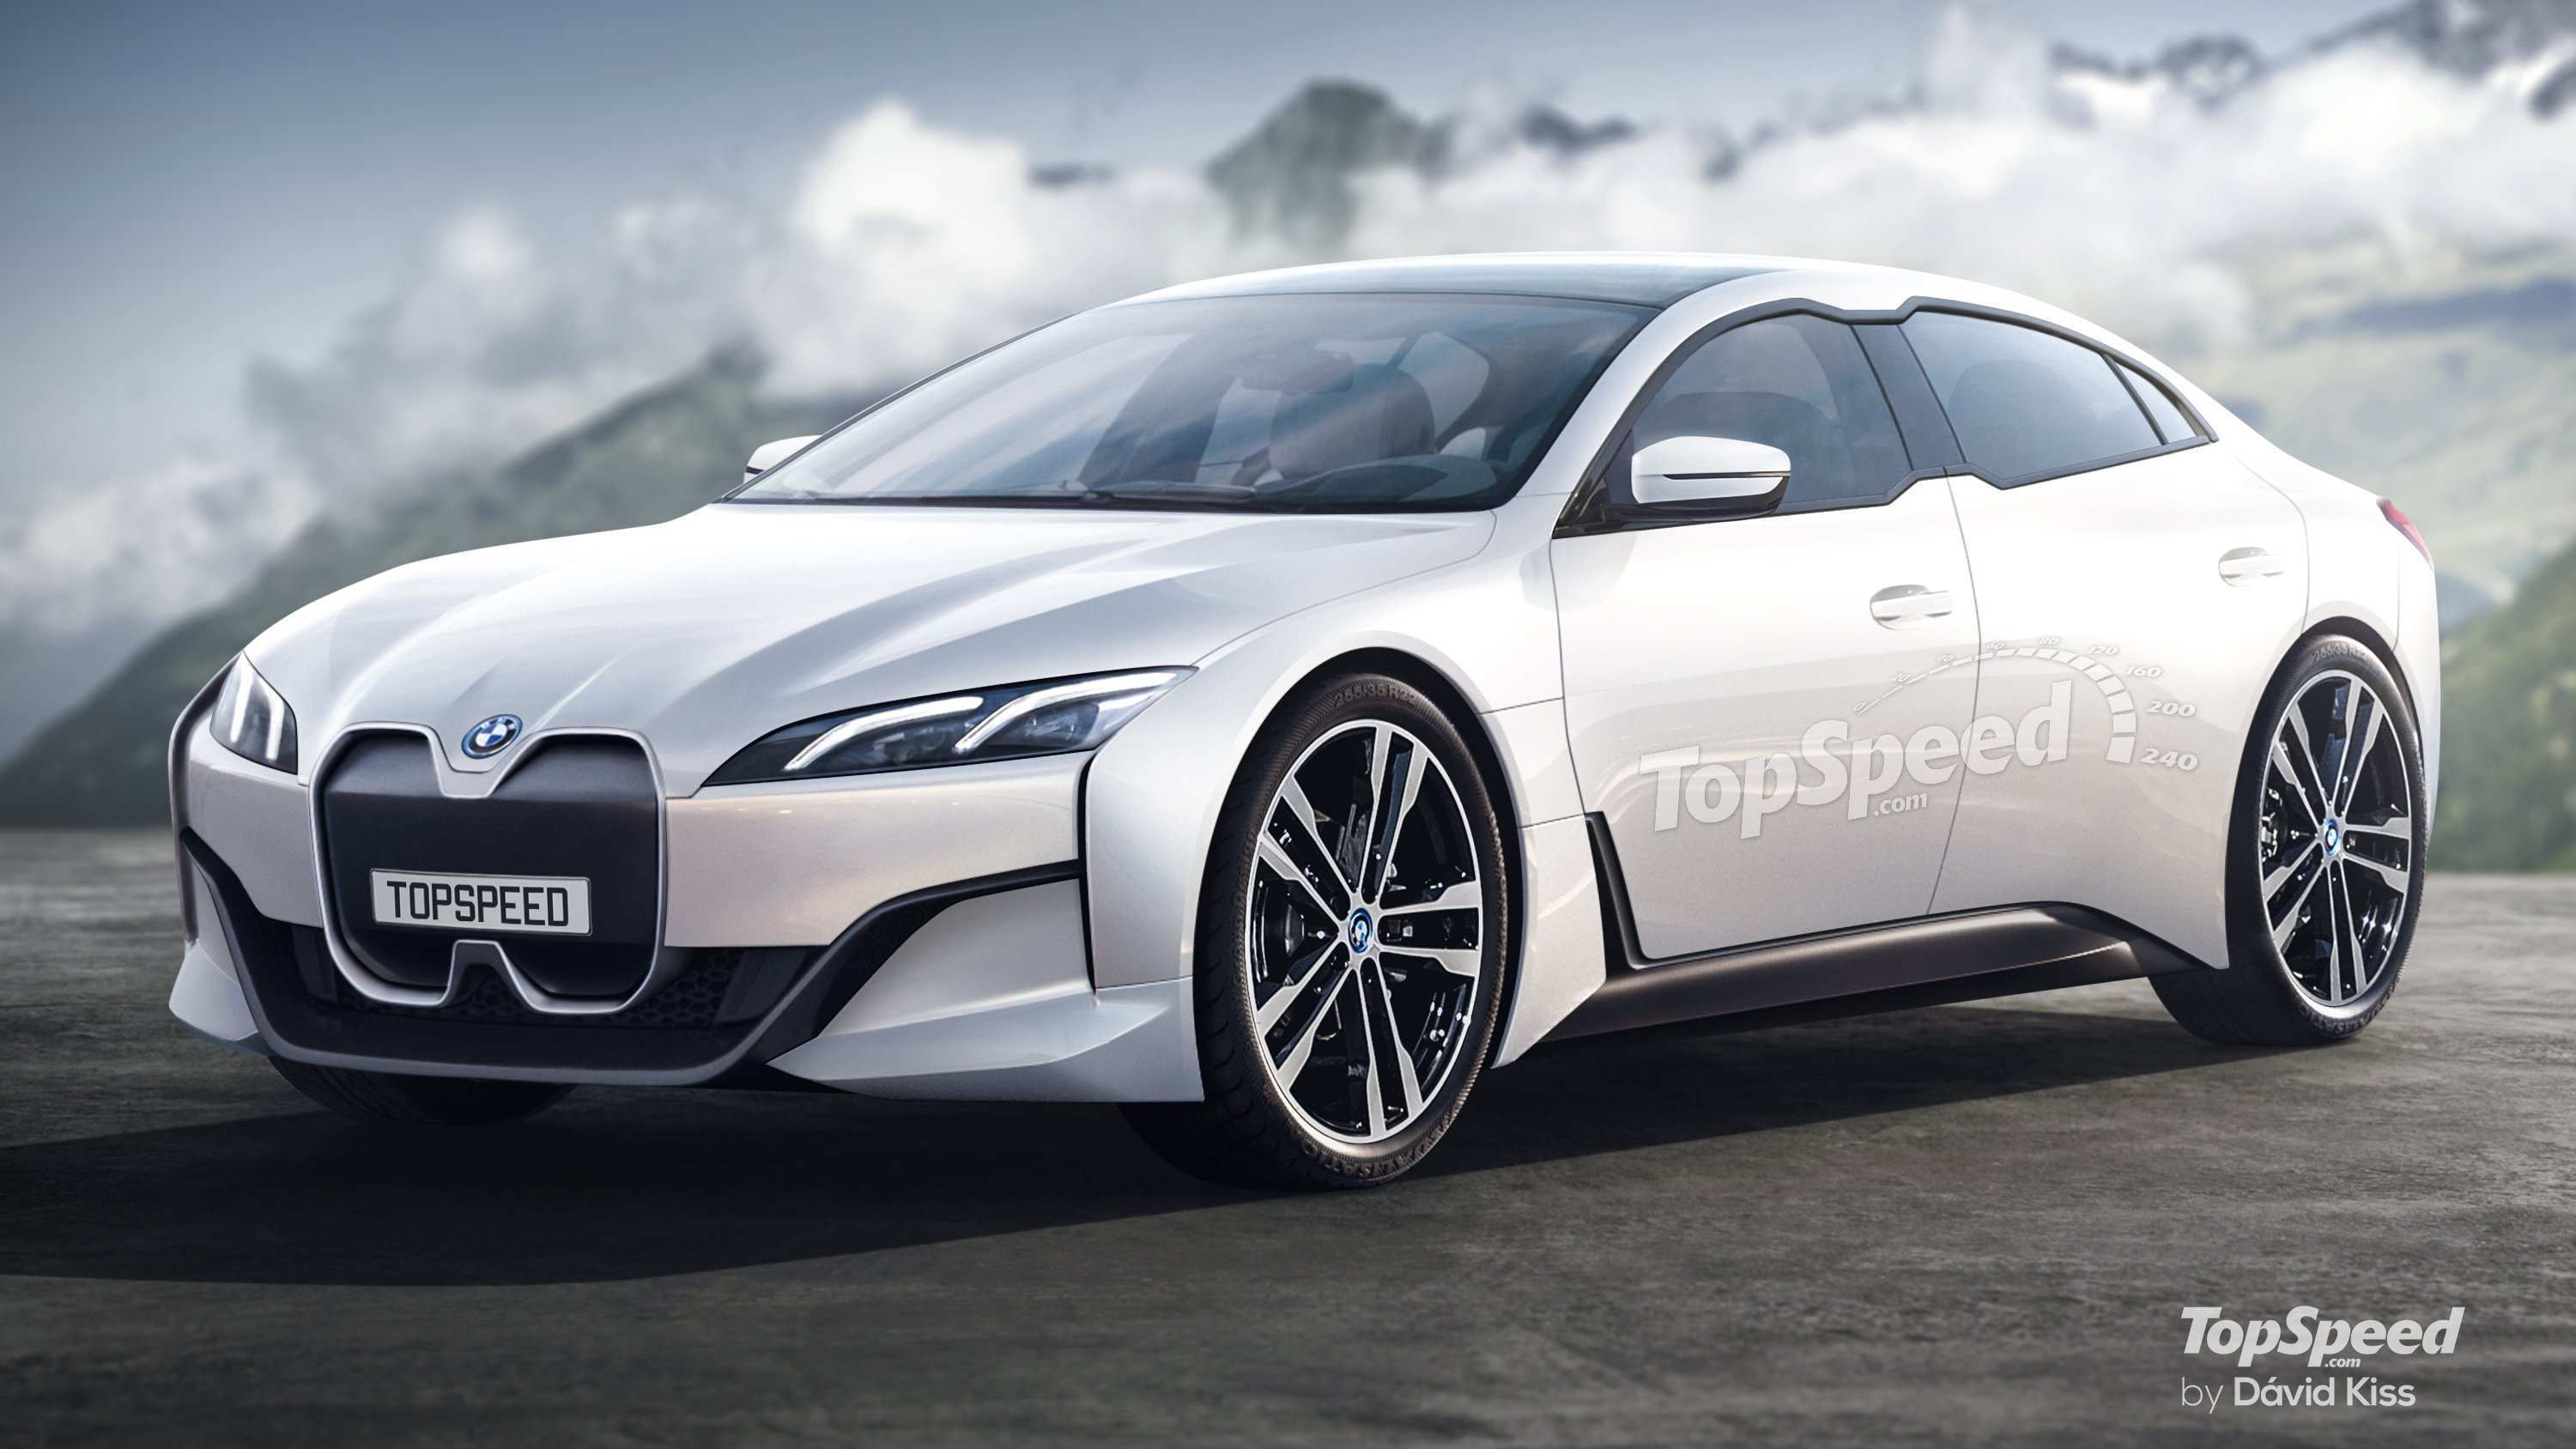 92 All New 2020 BMW Vehicles Wallpaper for 2020 BMW Vehicles